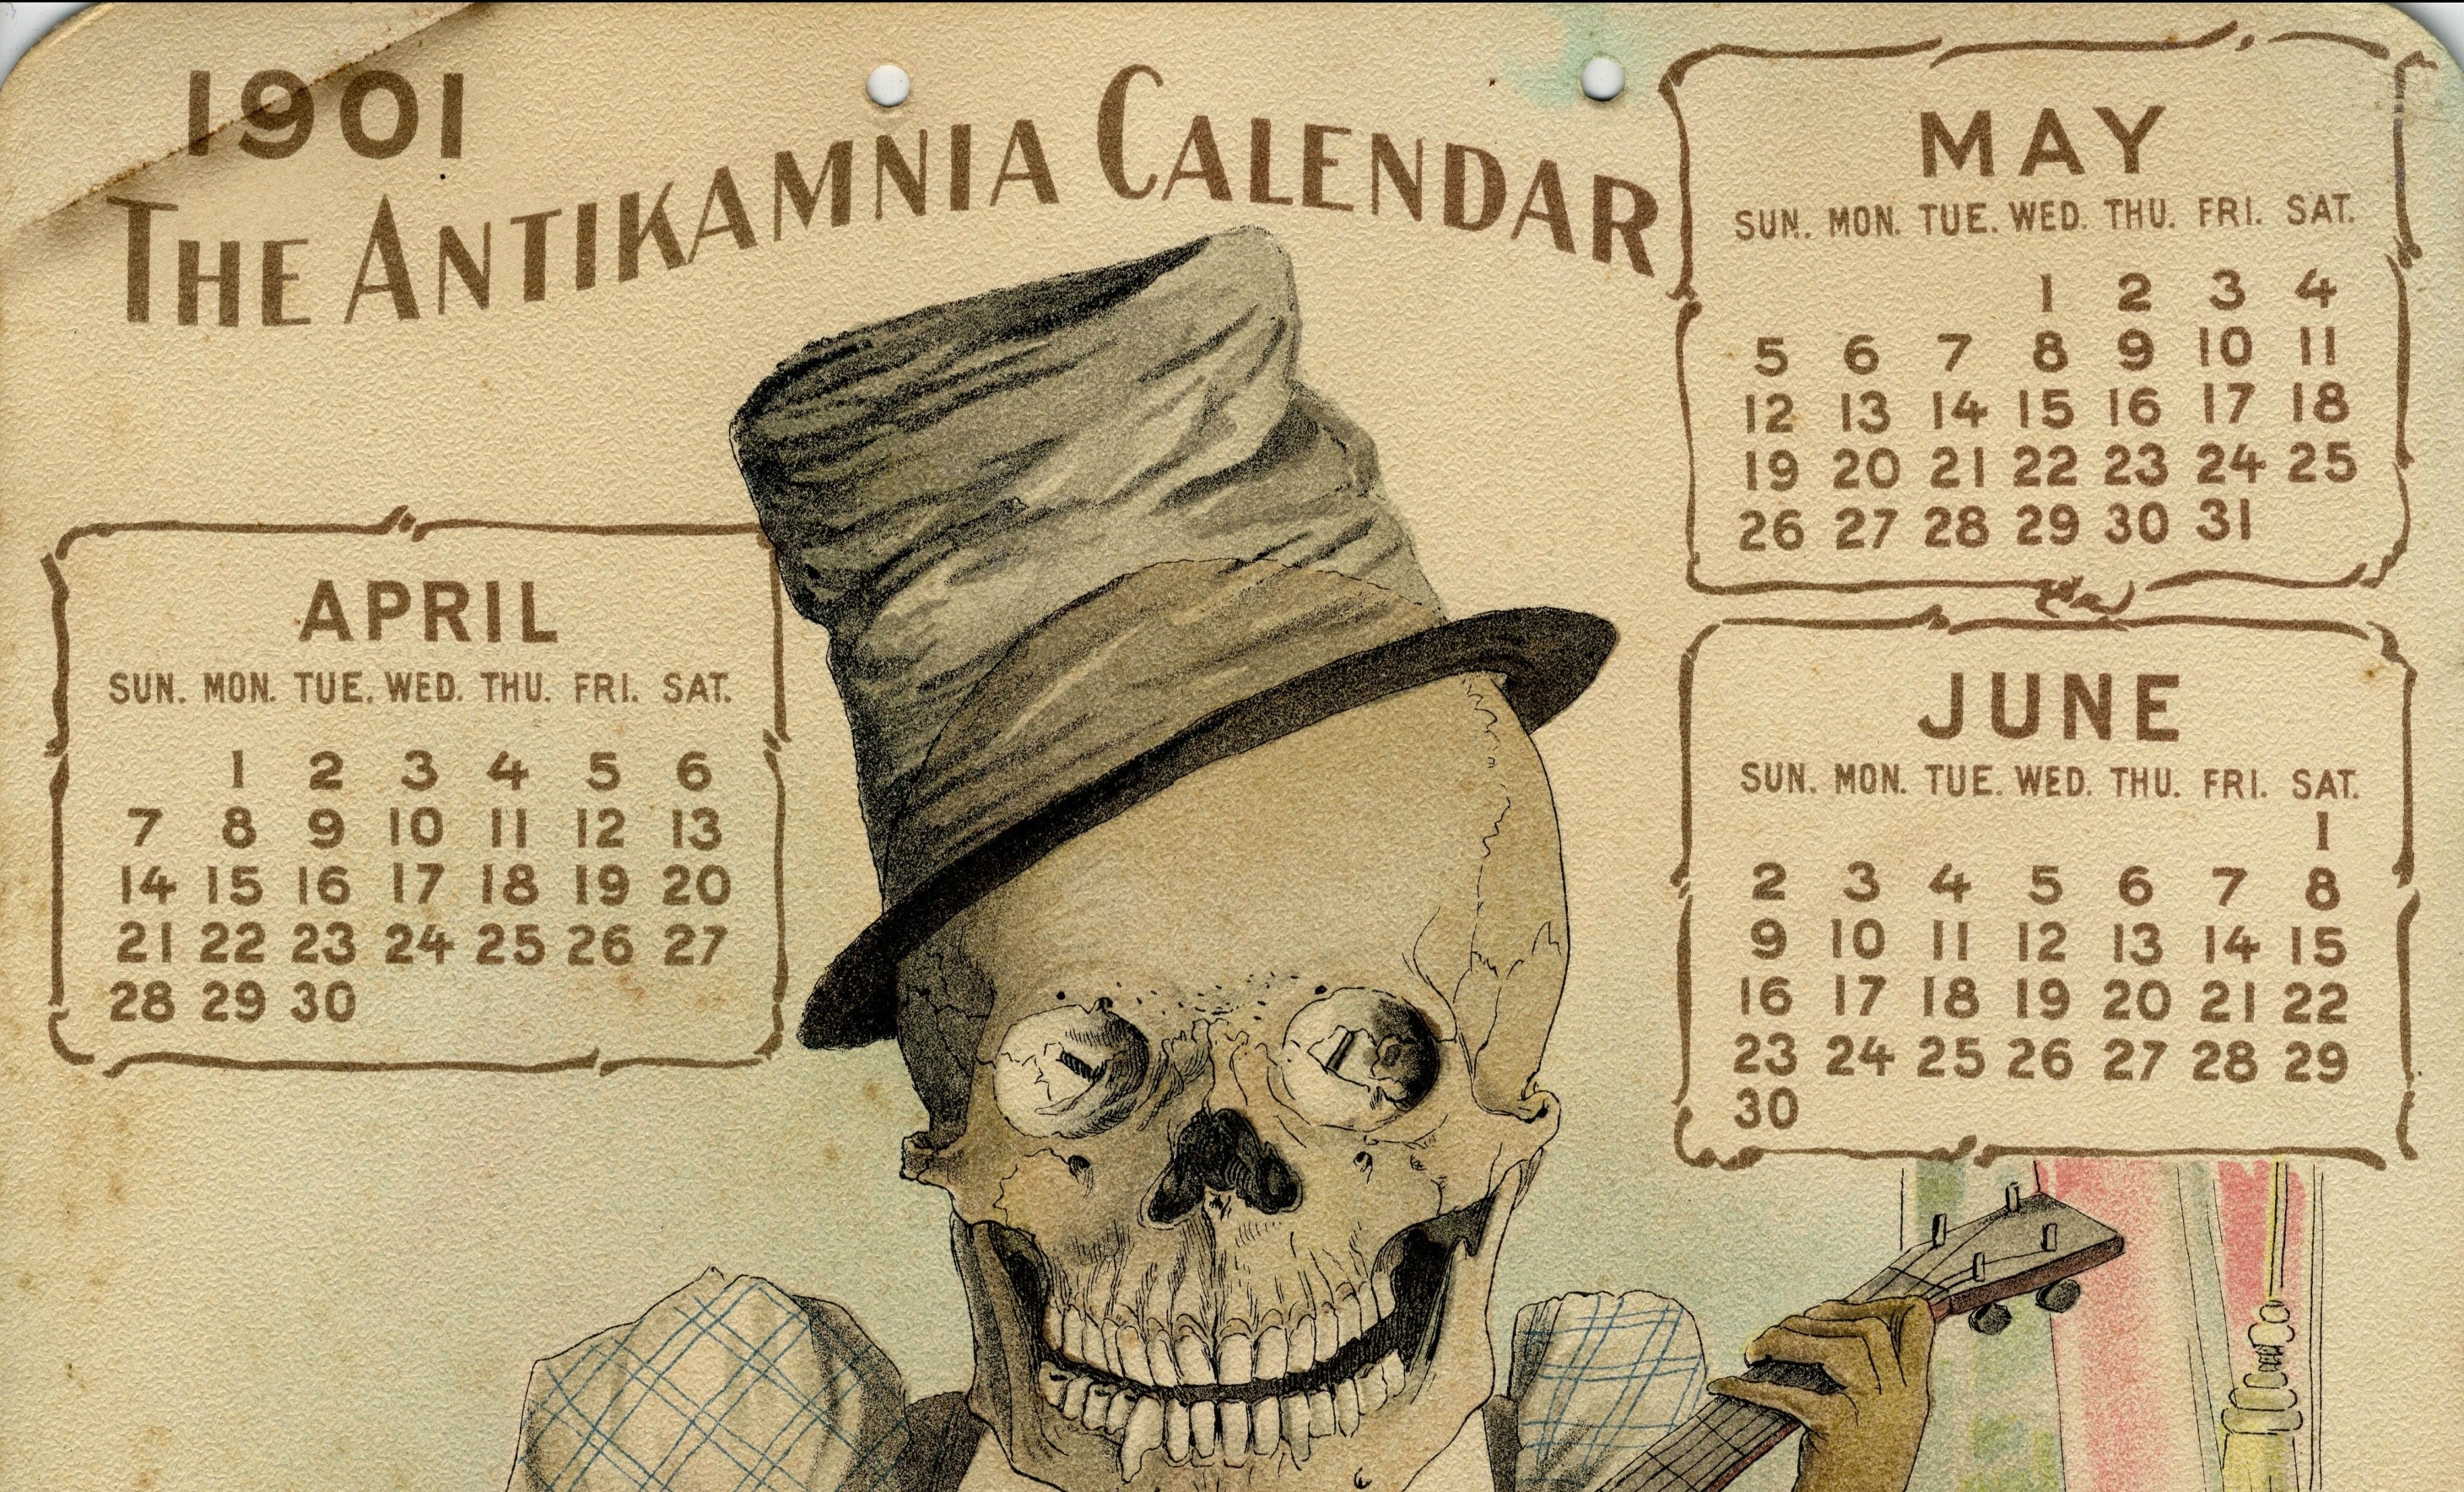 You Can Reuse These Vintage Calendars In 2019